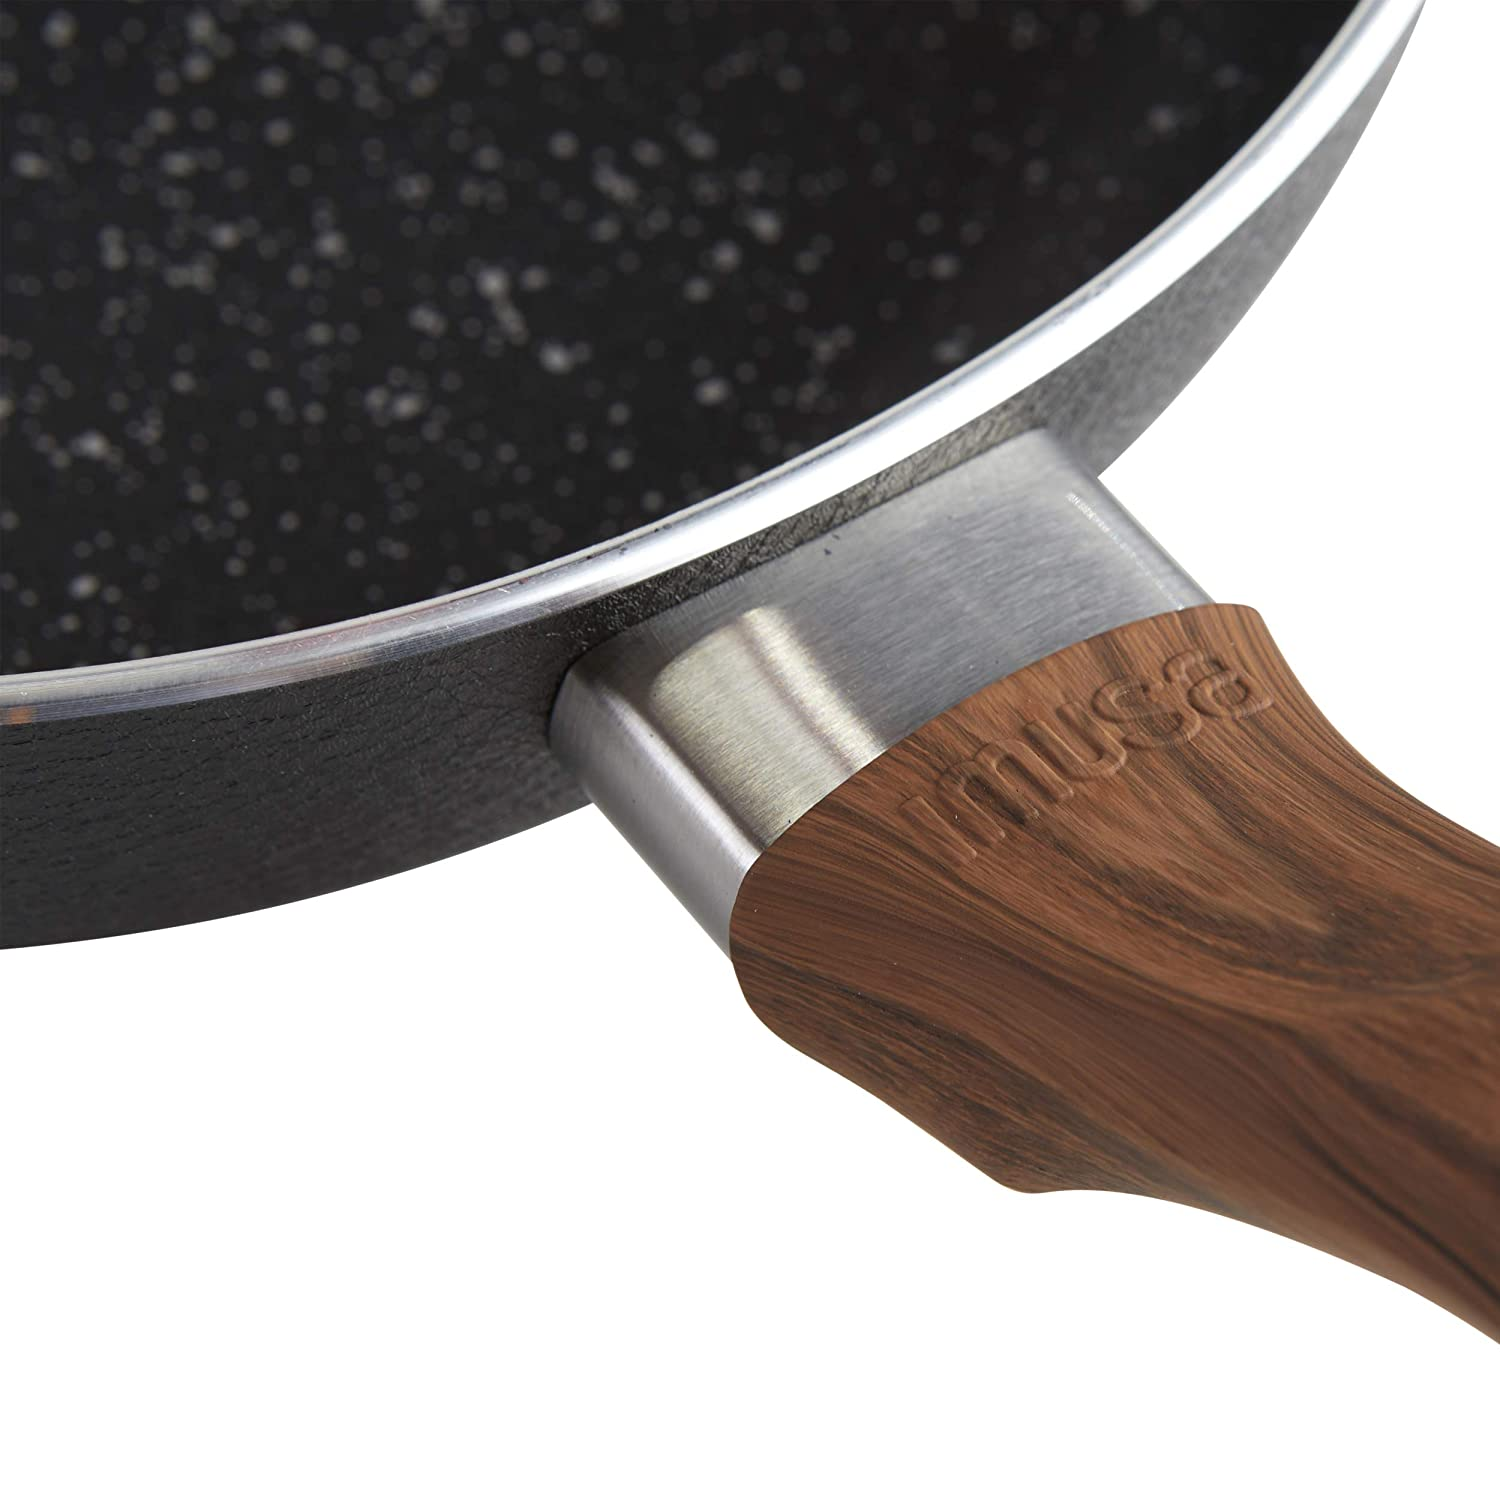 IMUSA USA IMU-91707 12 Black Stone Nonstick Fry Pan with Woodlook Handle and Speckled Nonstick Interior